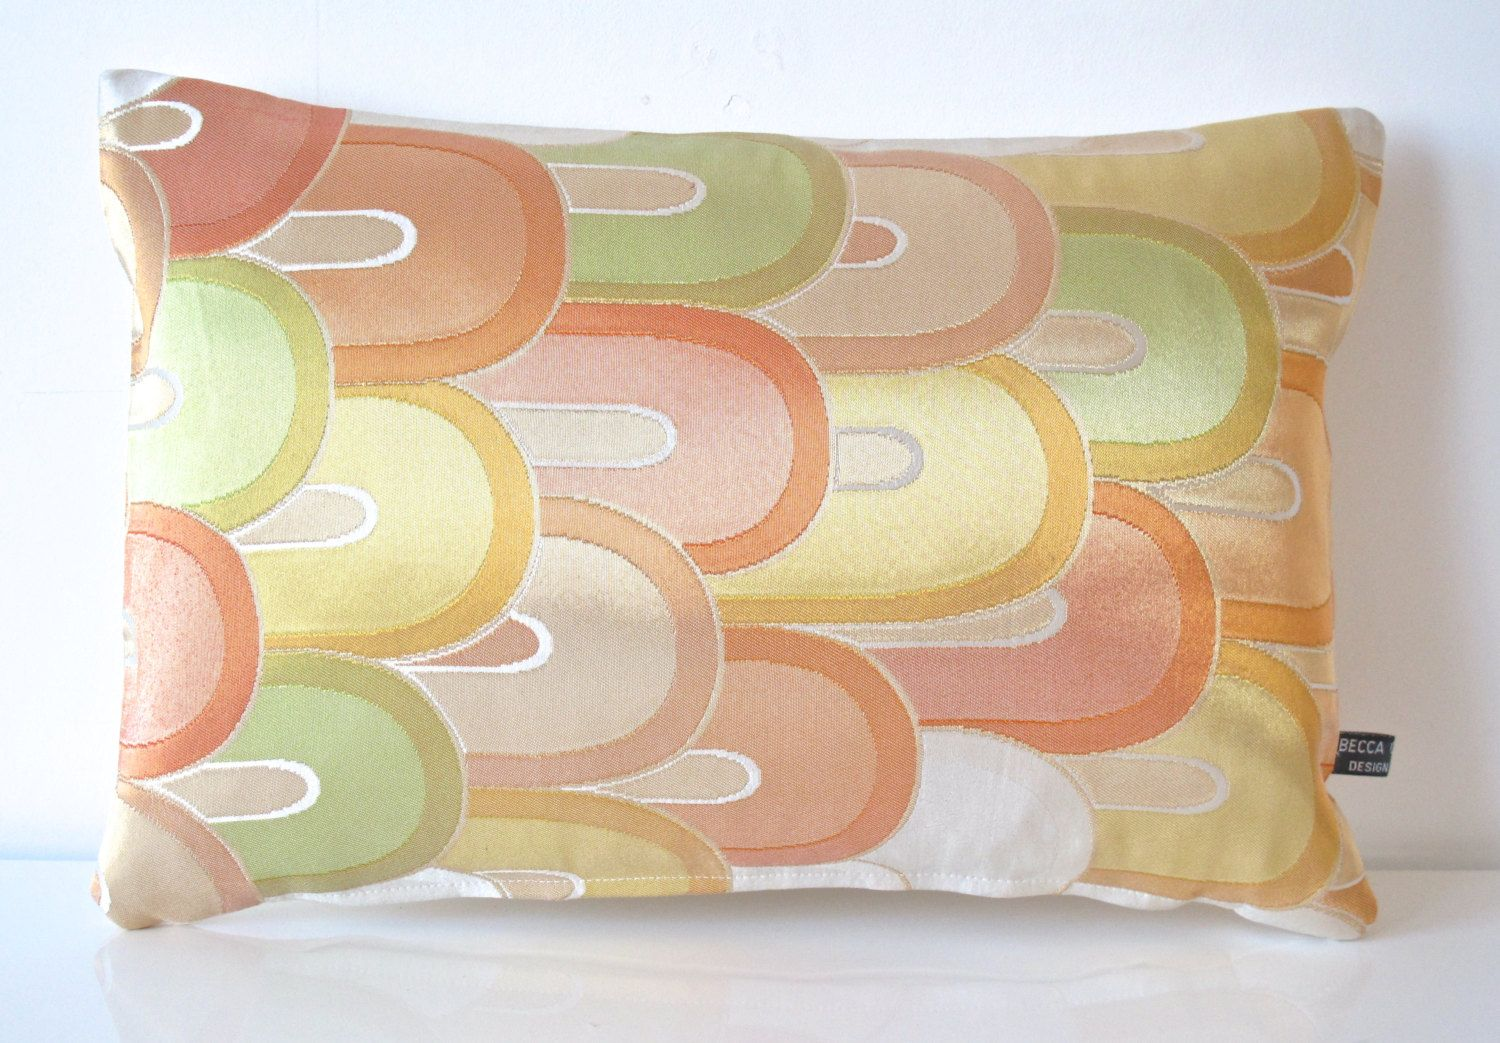 New spring collection silk cushion in a metallic pastel art deco